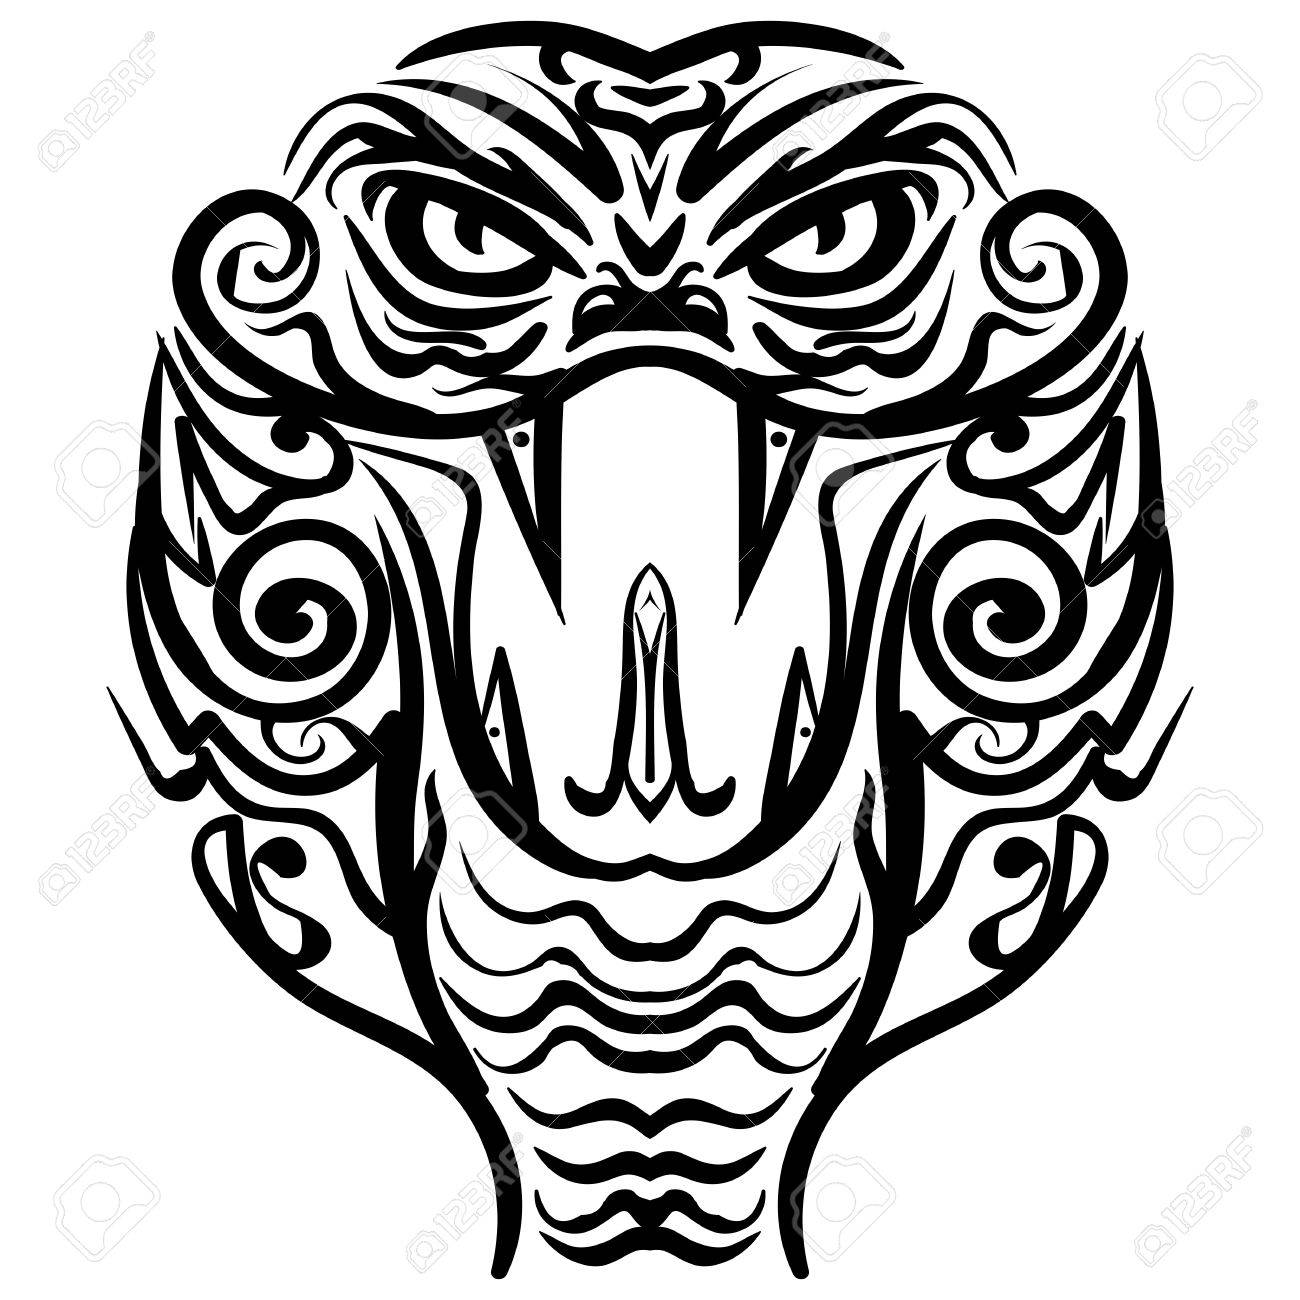 1300x1300 Cobra Head Sketch Tattoo. Patterned Colored Head Of The King